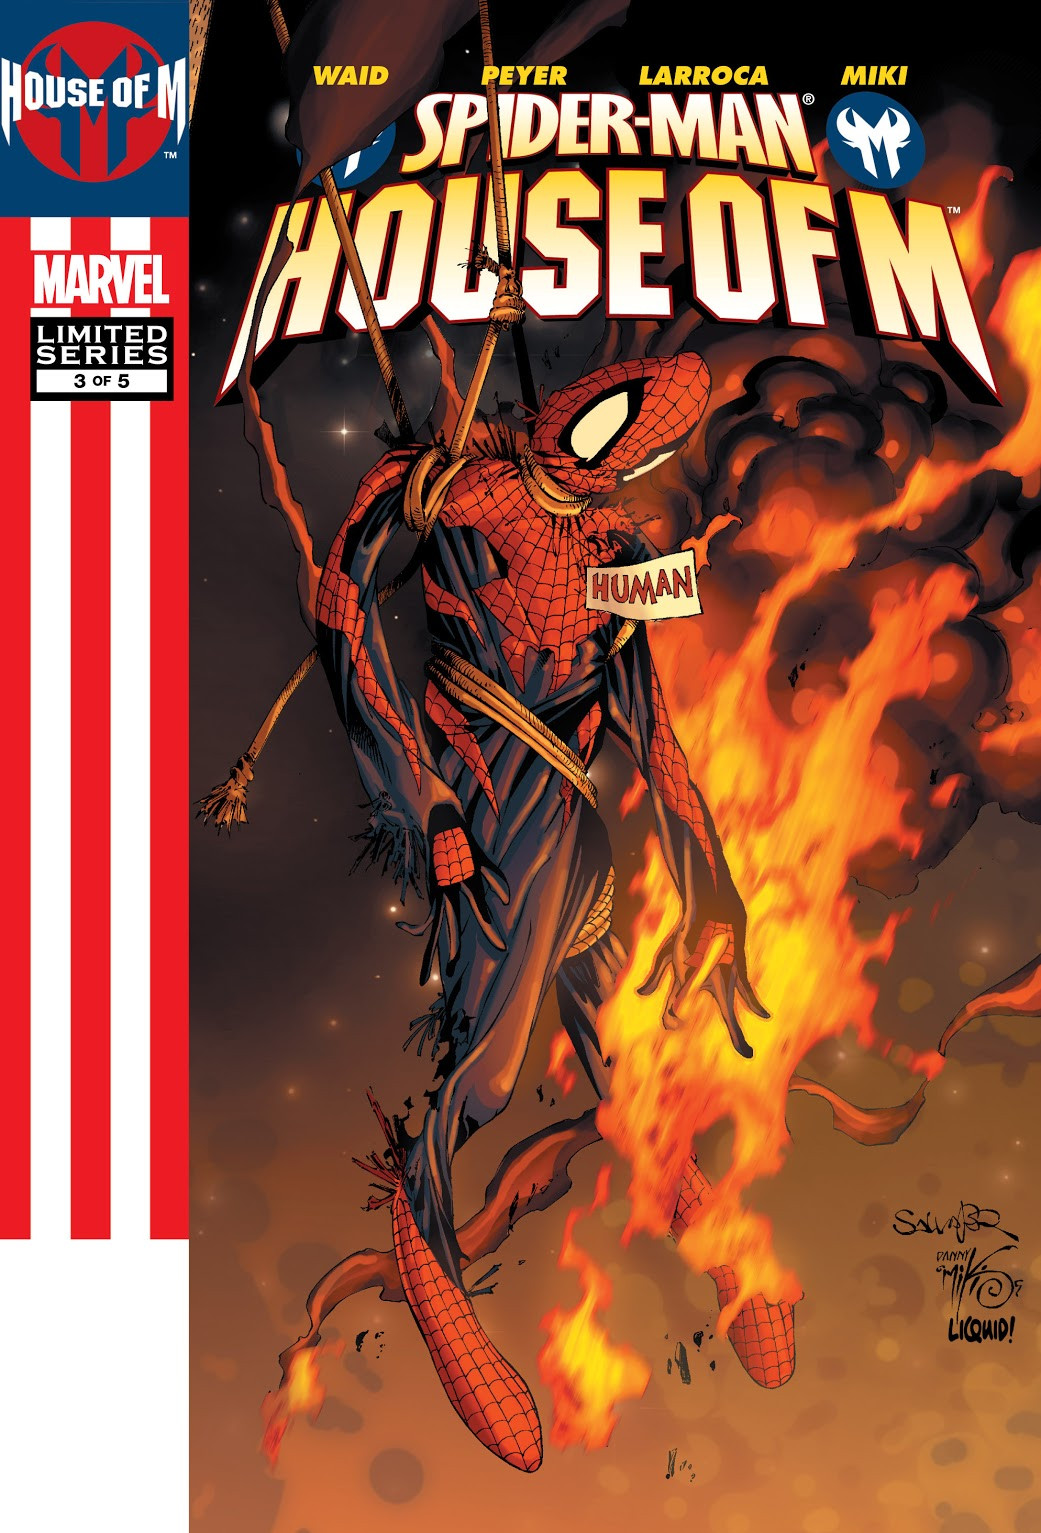 Spider-Man: House of M Vol 1 3